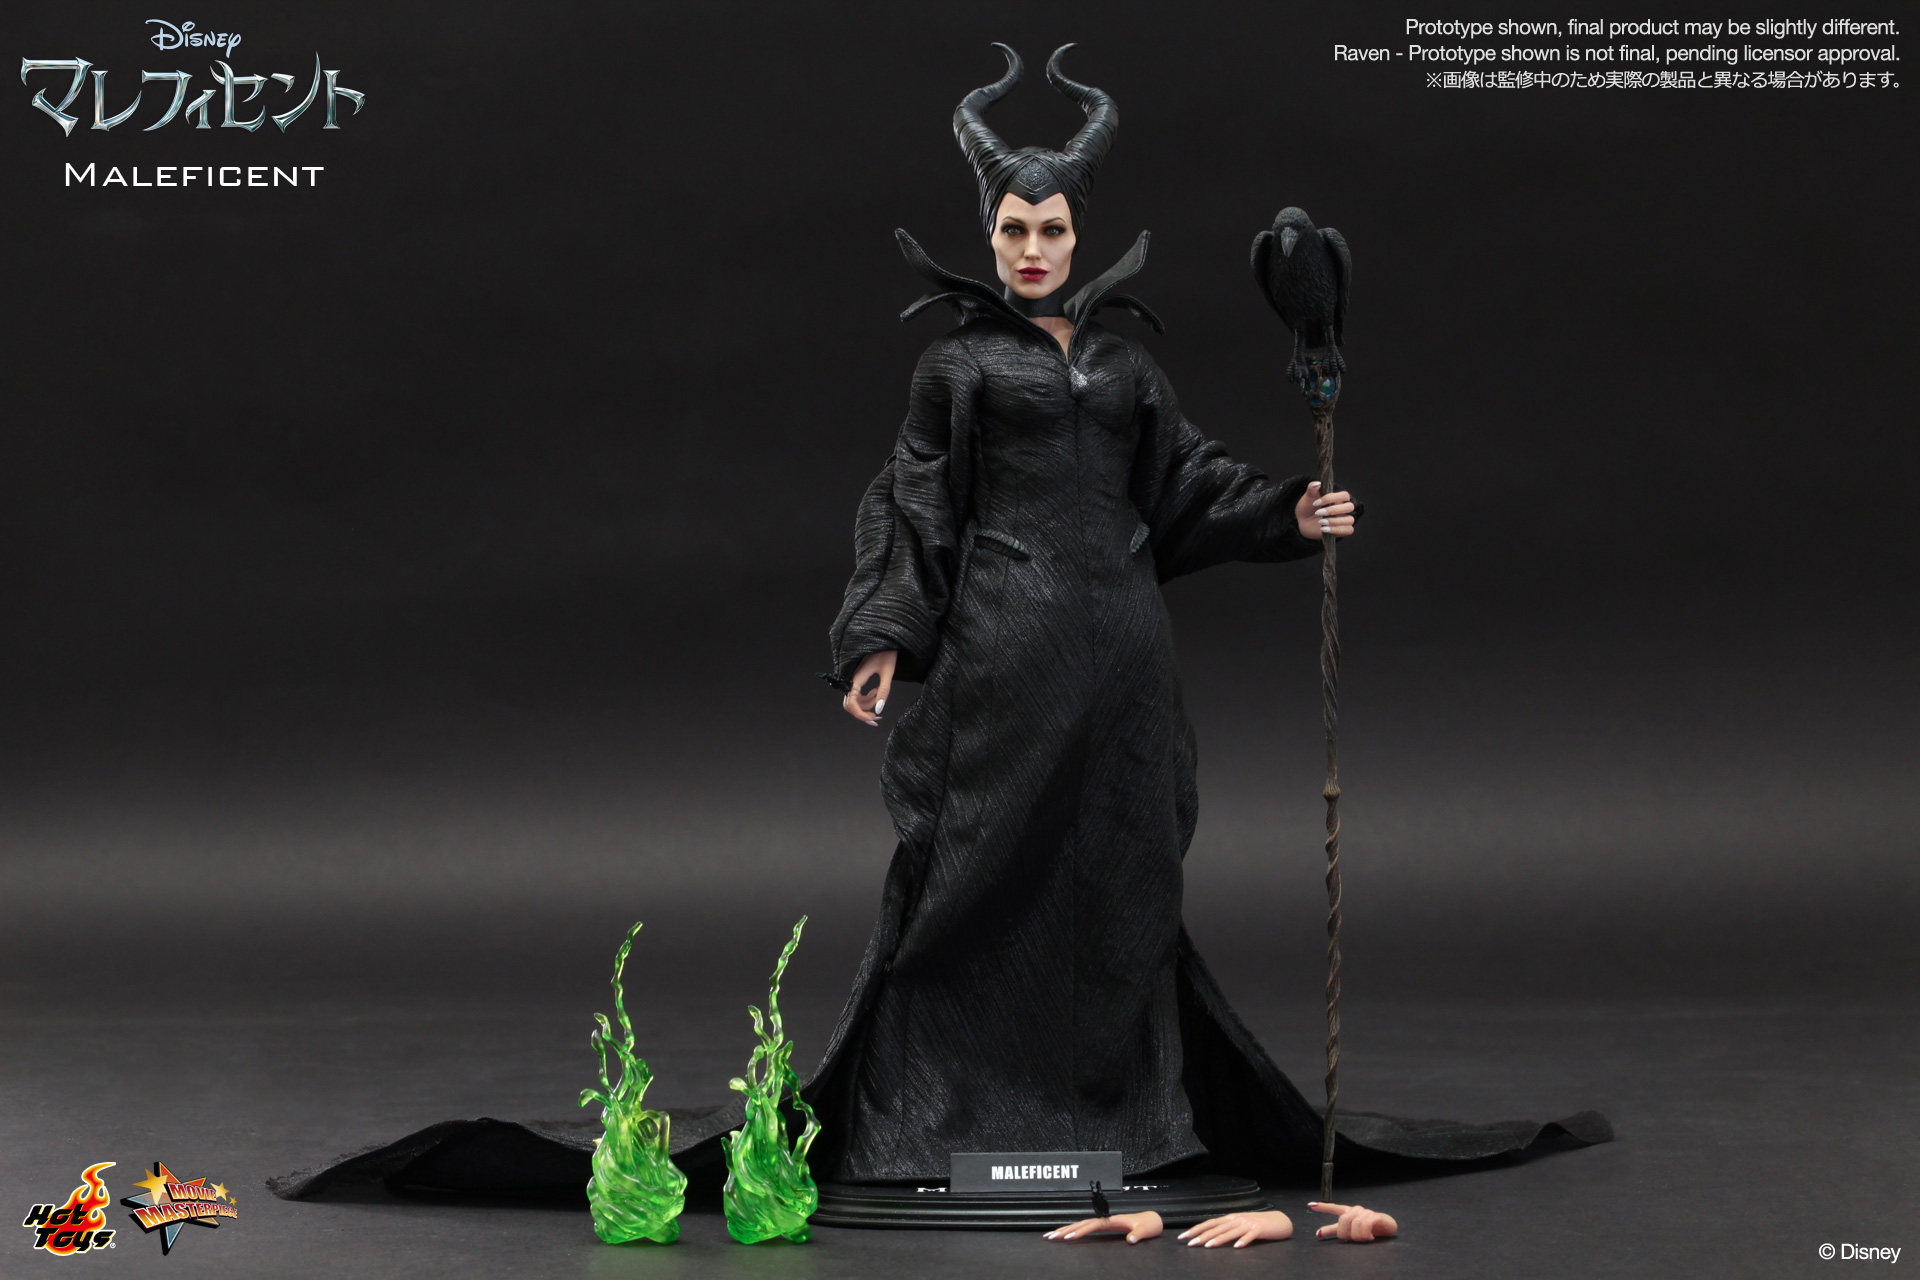 http://www.hottoys.jp/catalog/swfdata/ht3429/imgview_image/up_13.jpg